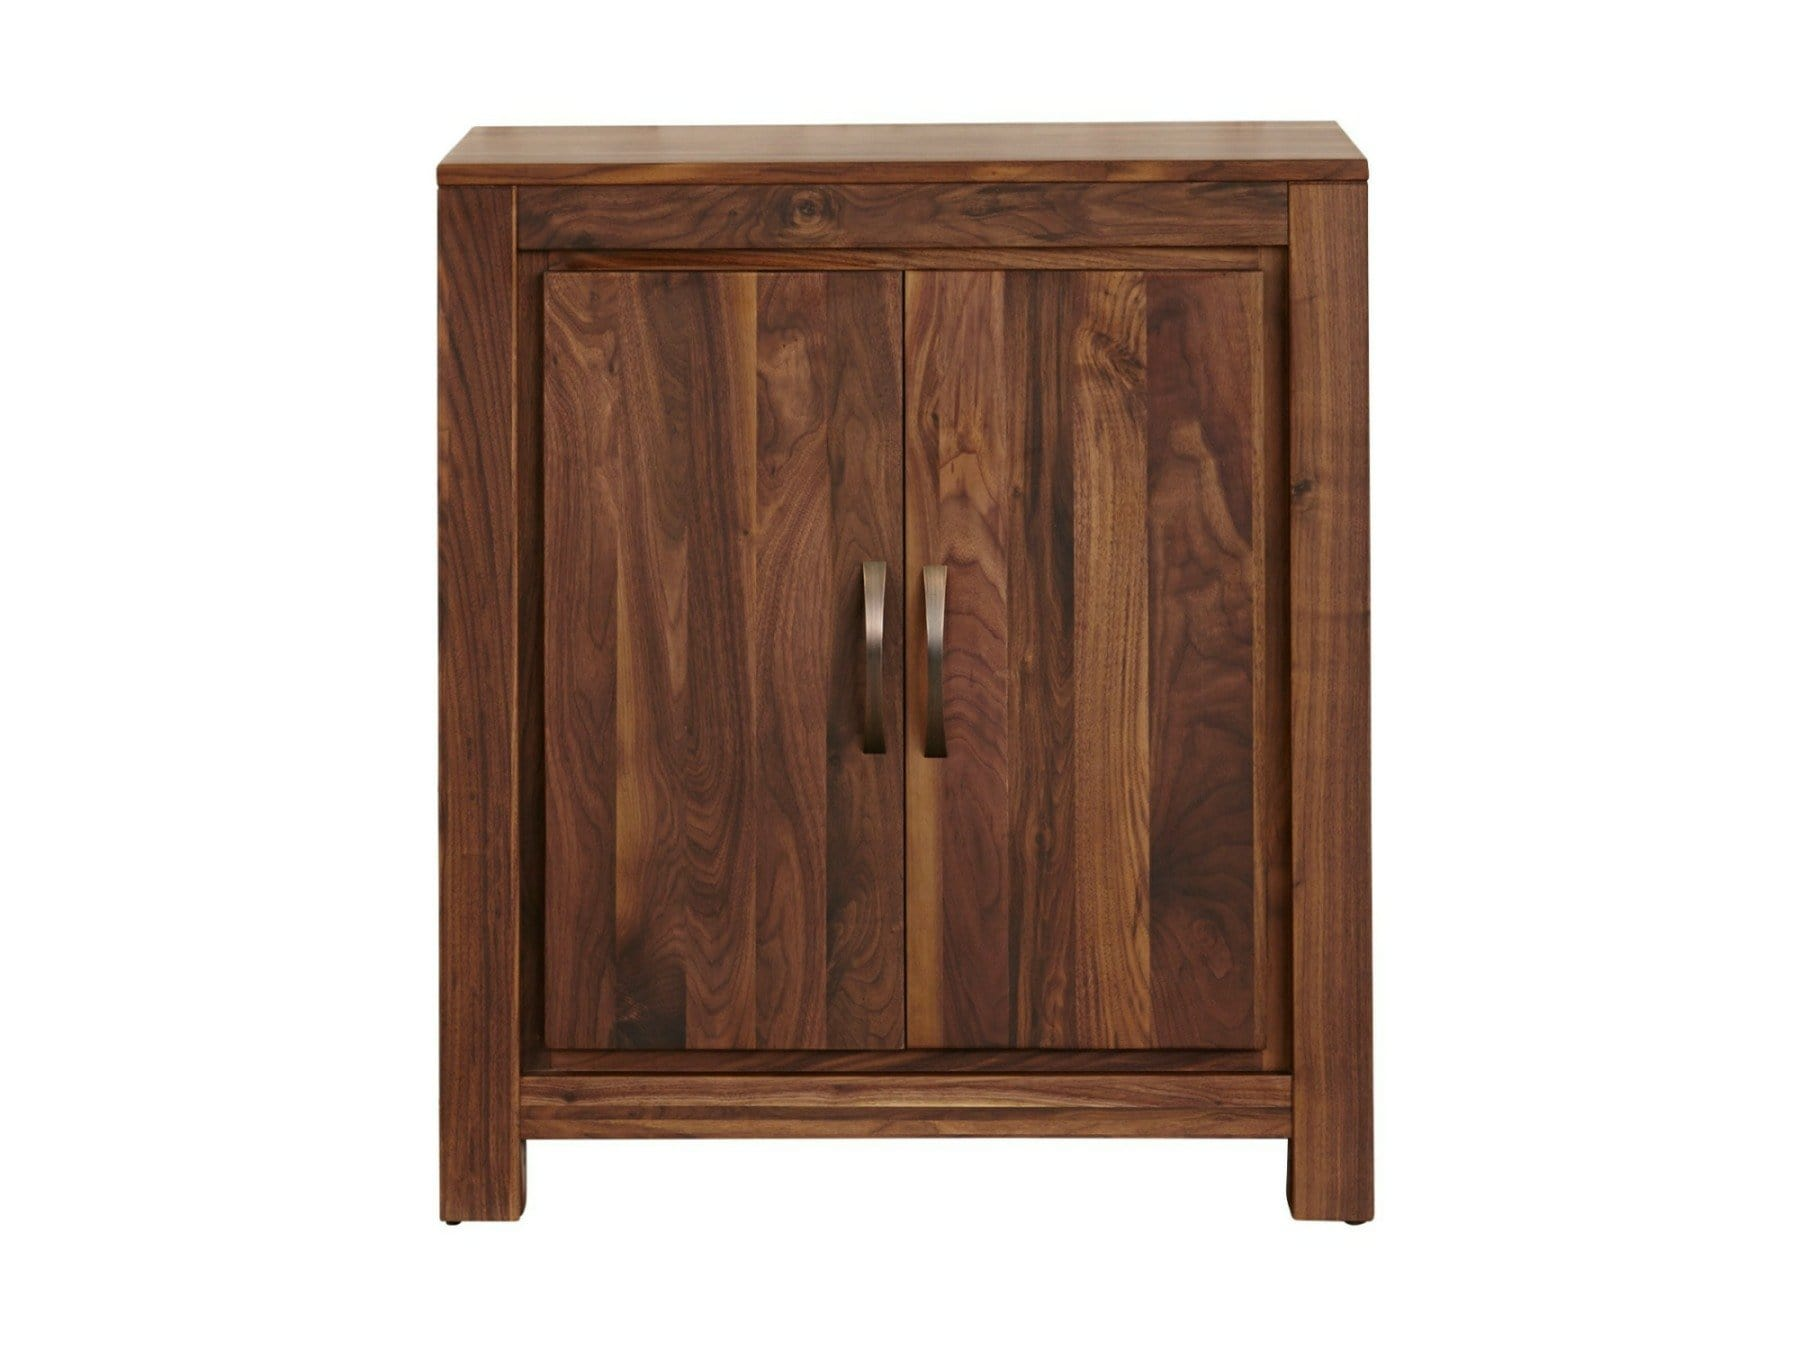 Small walnut hallway shoe cabinet with capacity for twenty pairs of shoes